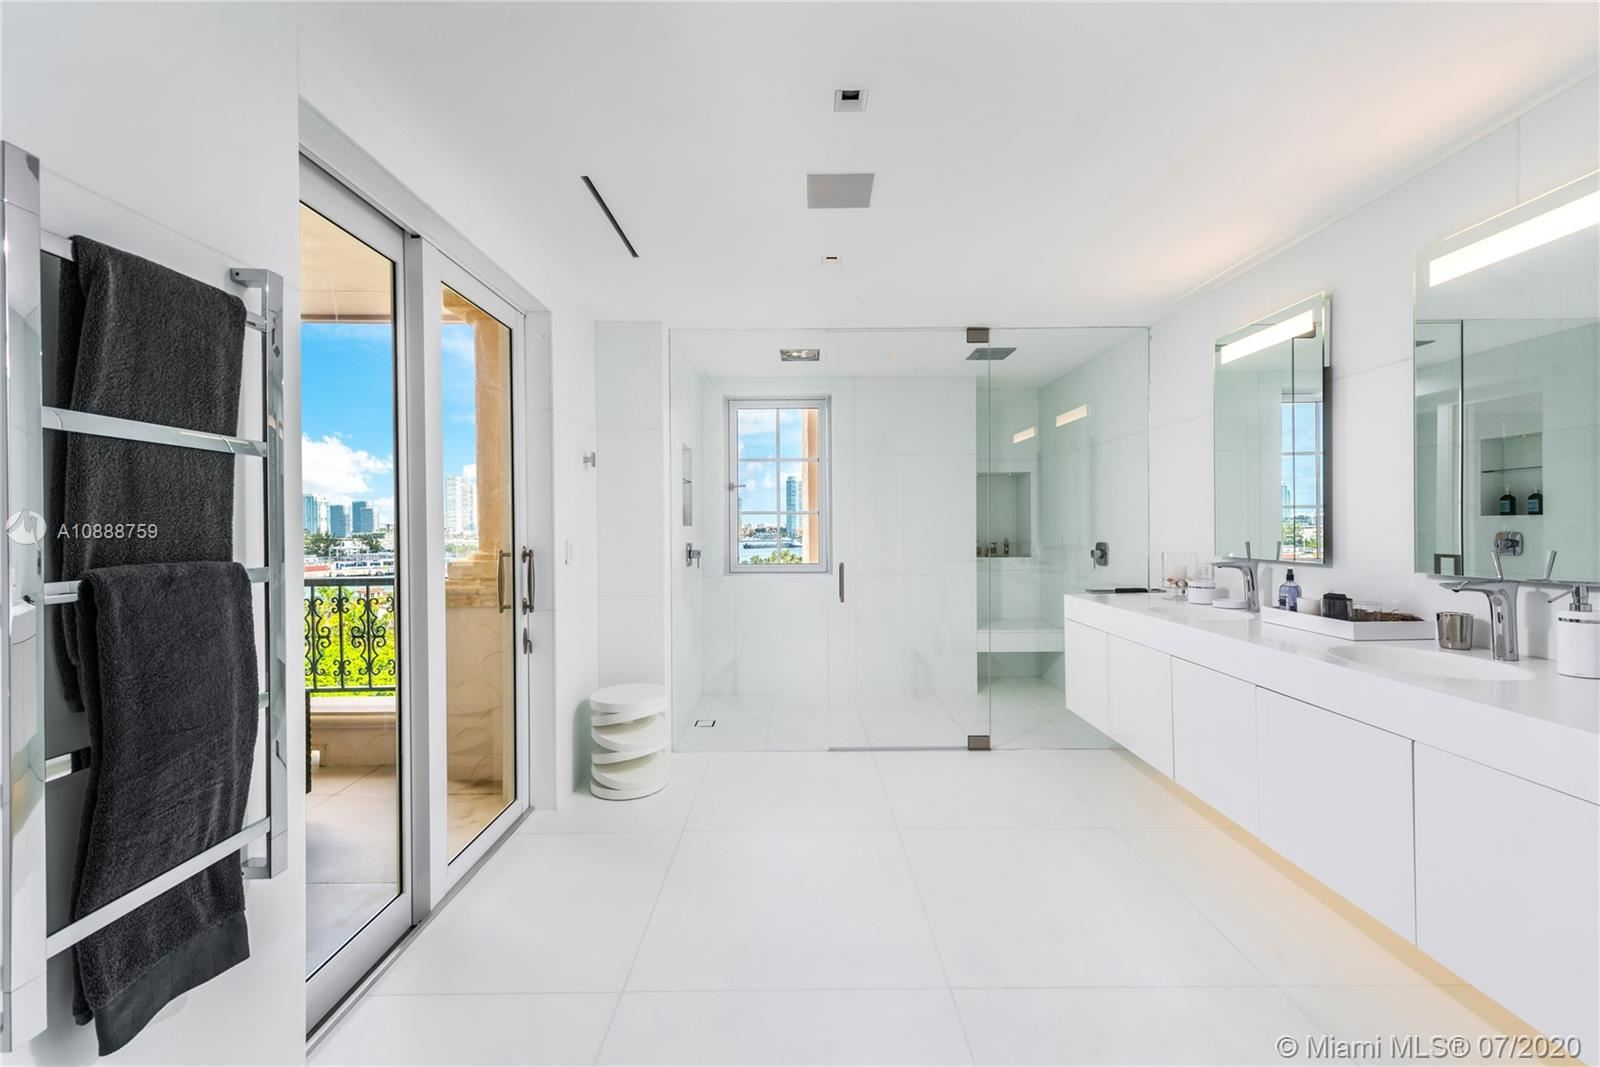 Photo 38 of Listing MLS a10888759 in 5282 Fisher Island Dr #5282 Miami FL 33109